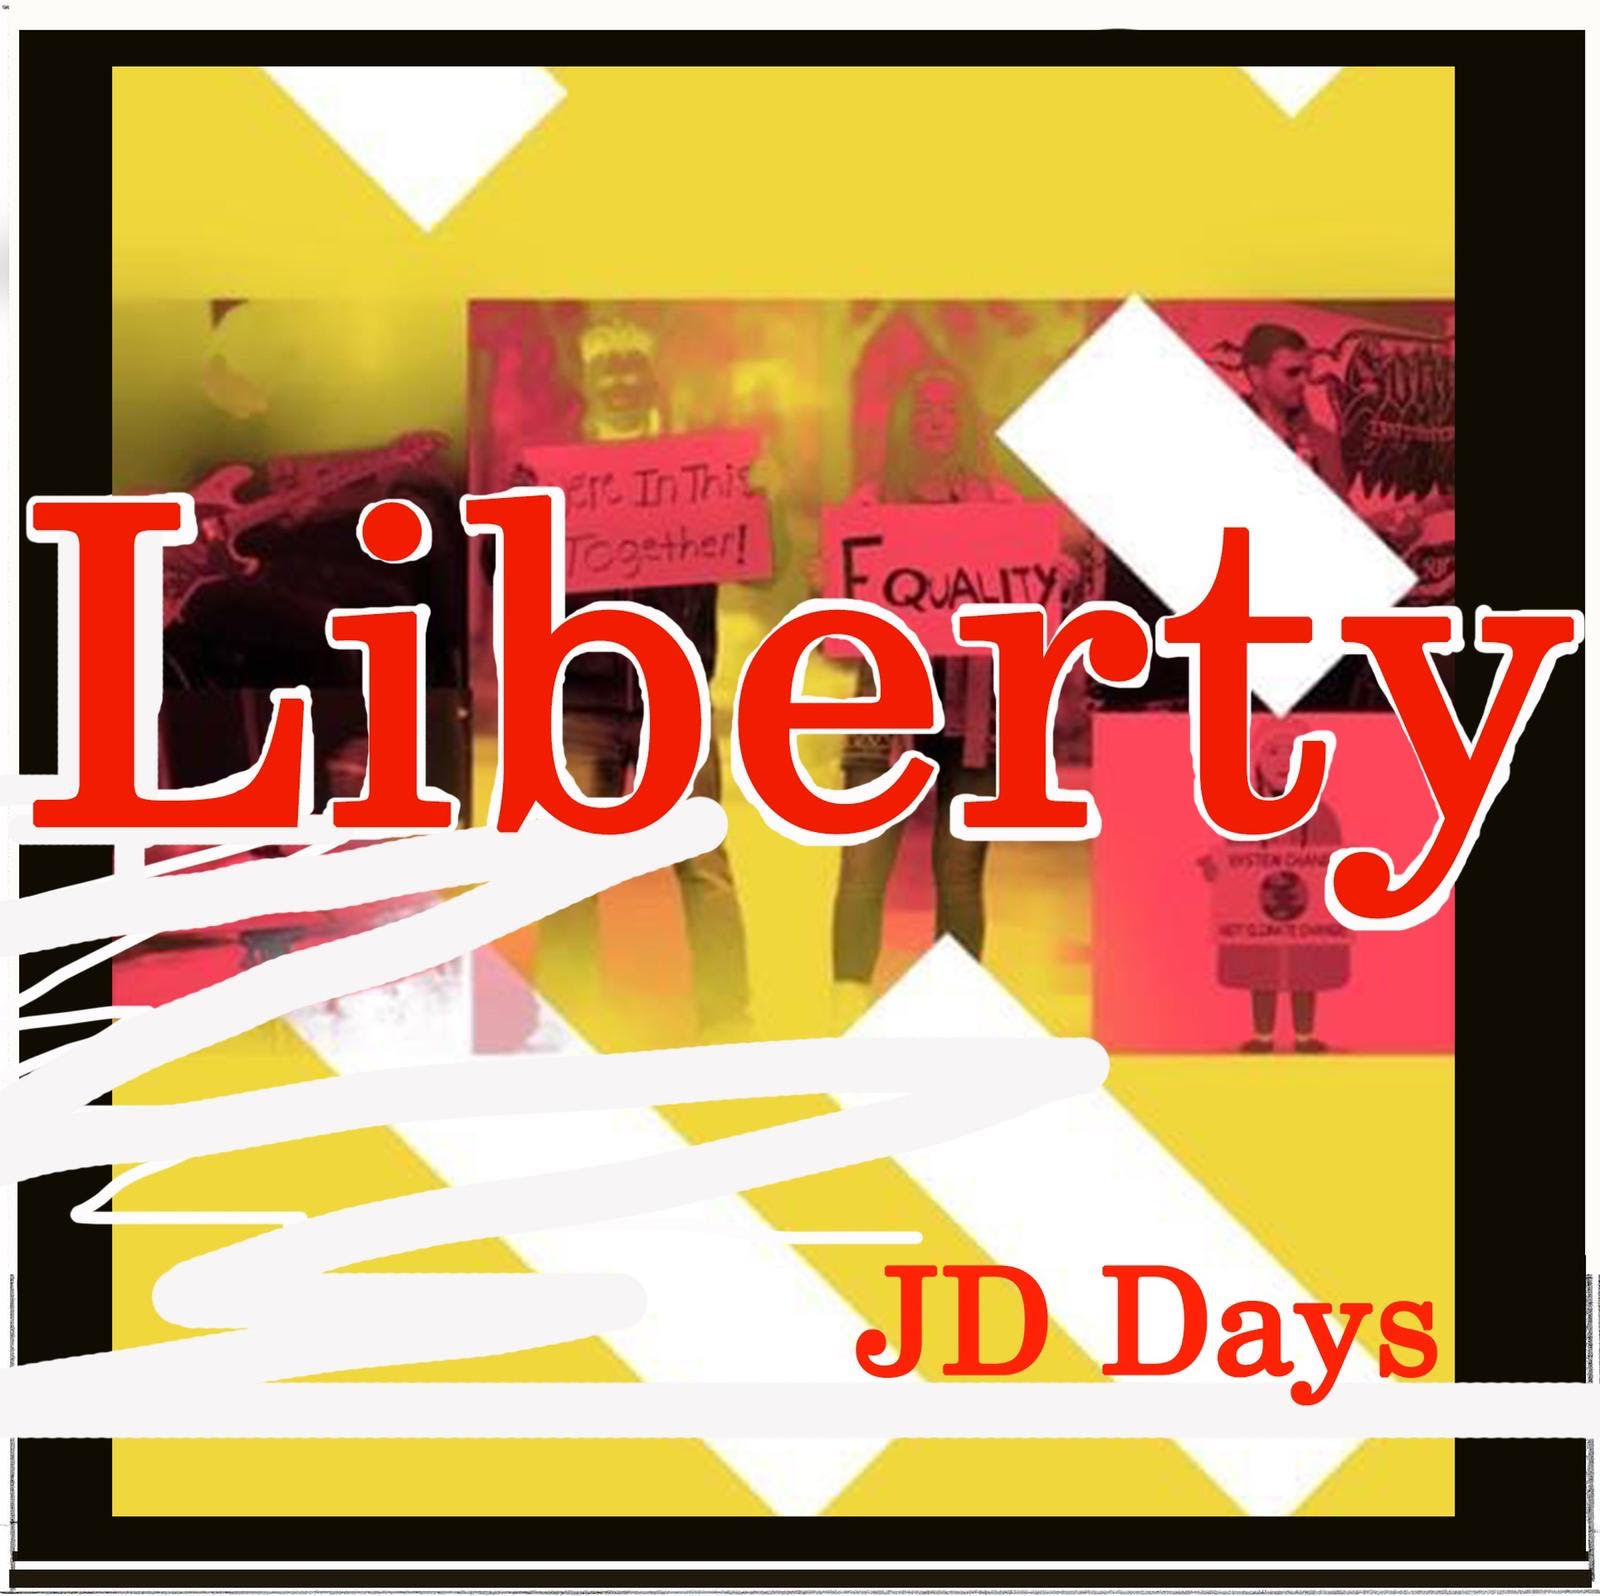 JD Days Offers New Freedom In Latest Single